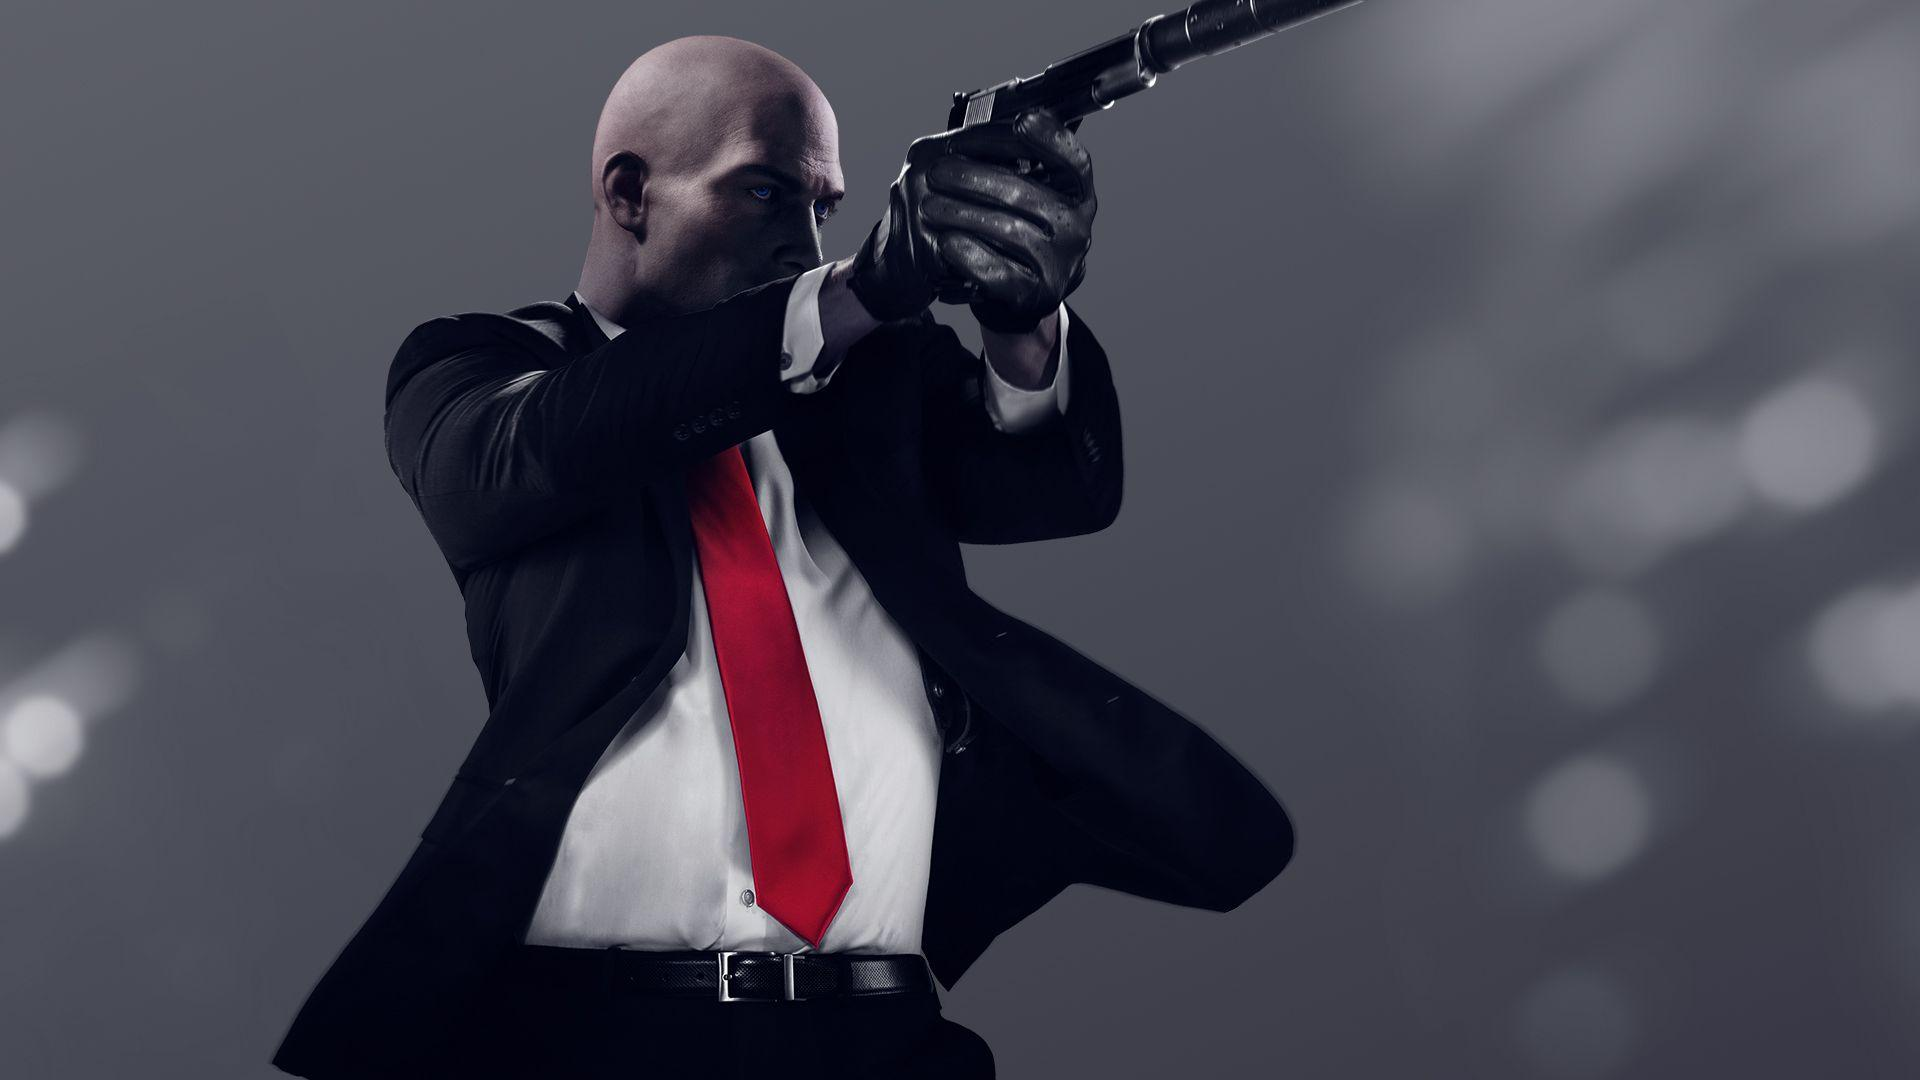 ultra hd hitman 2 wallpaper